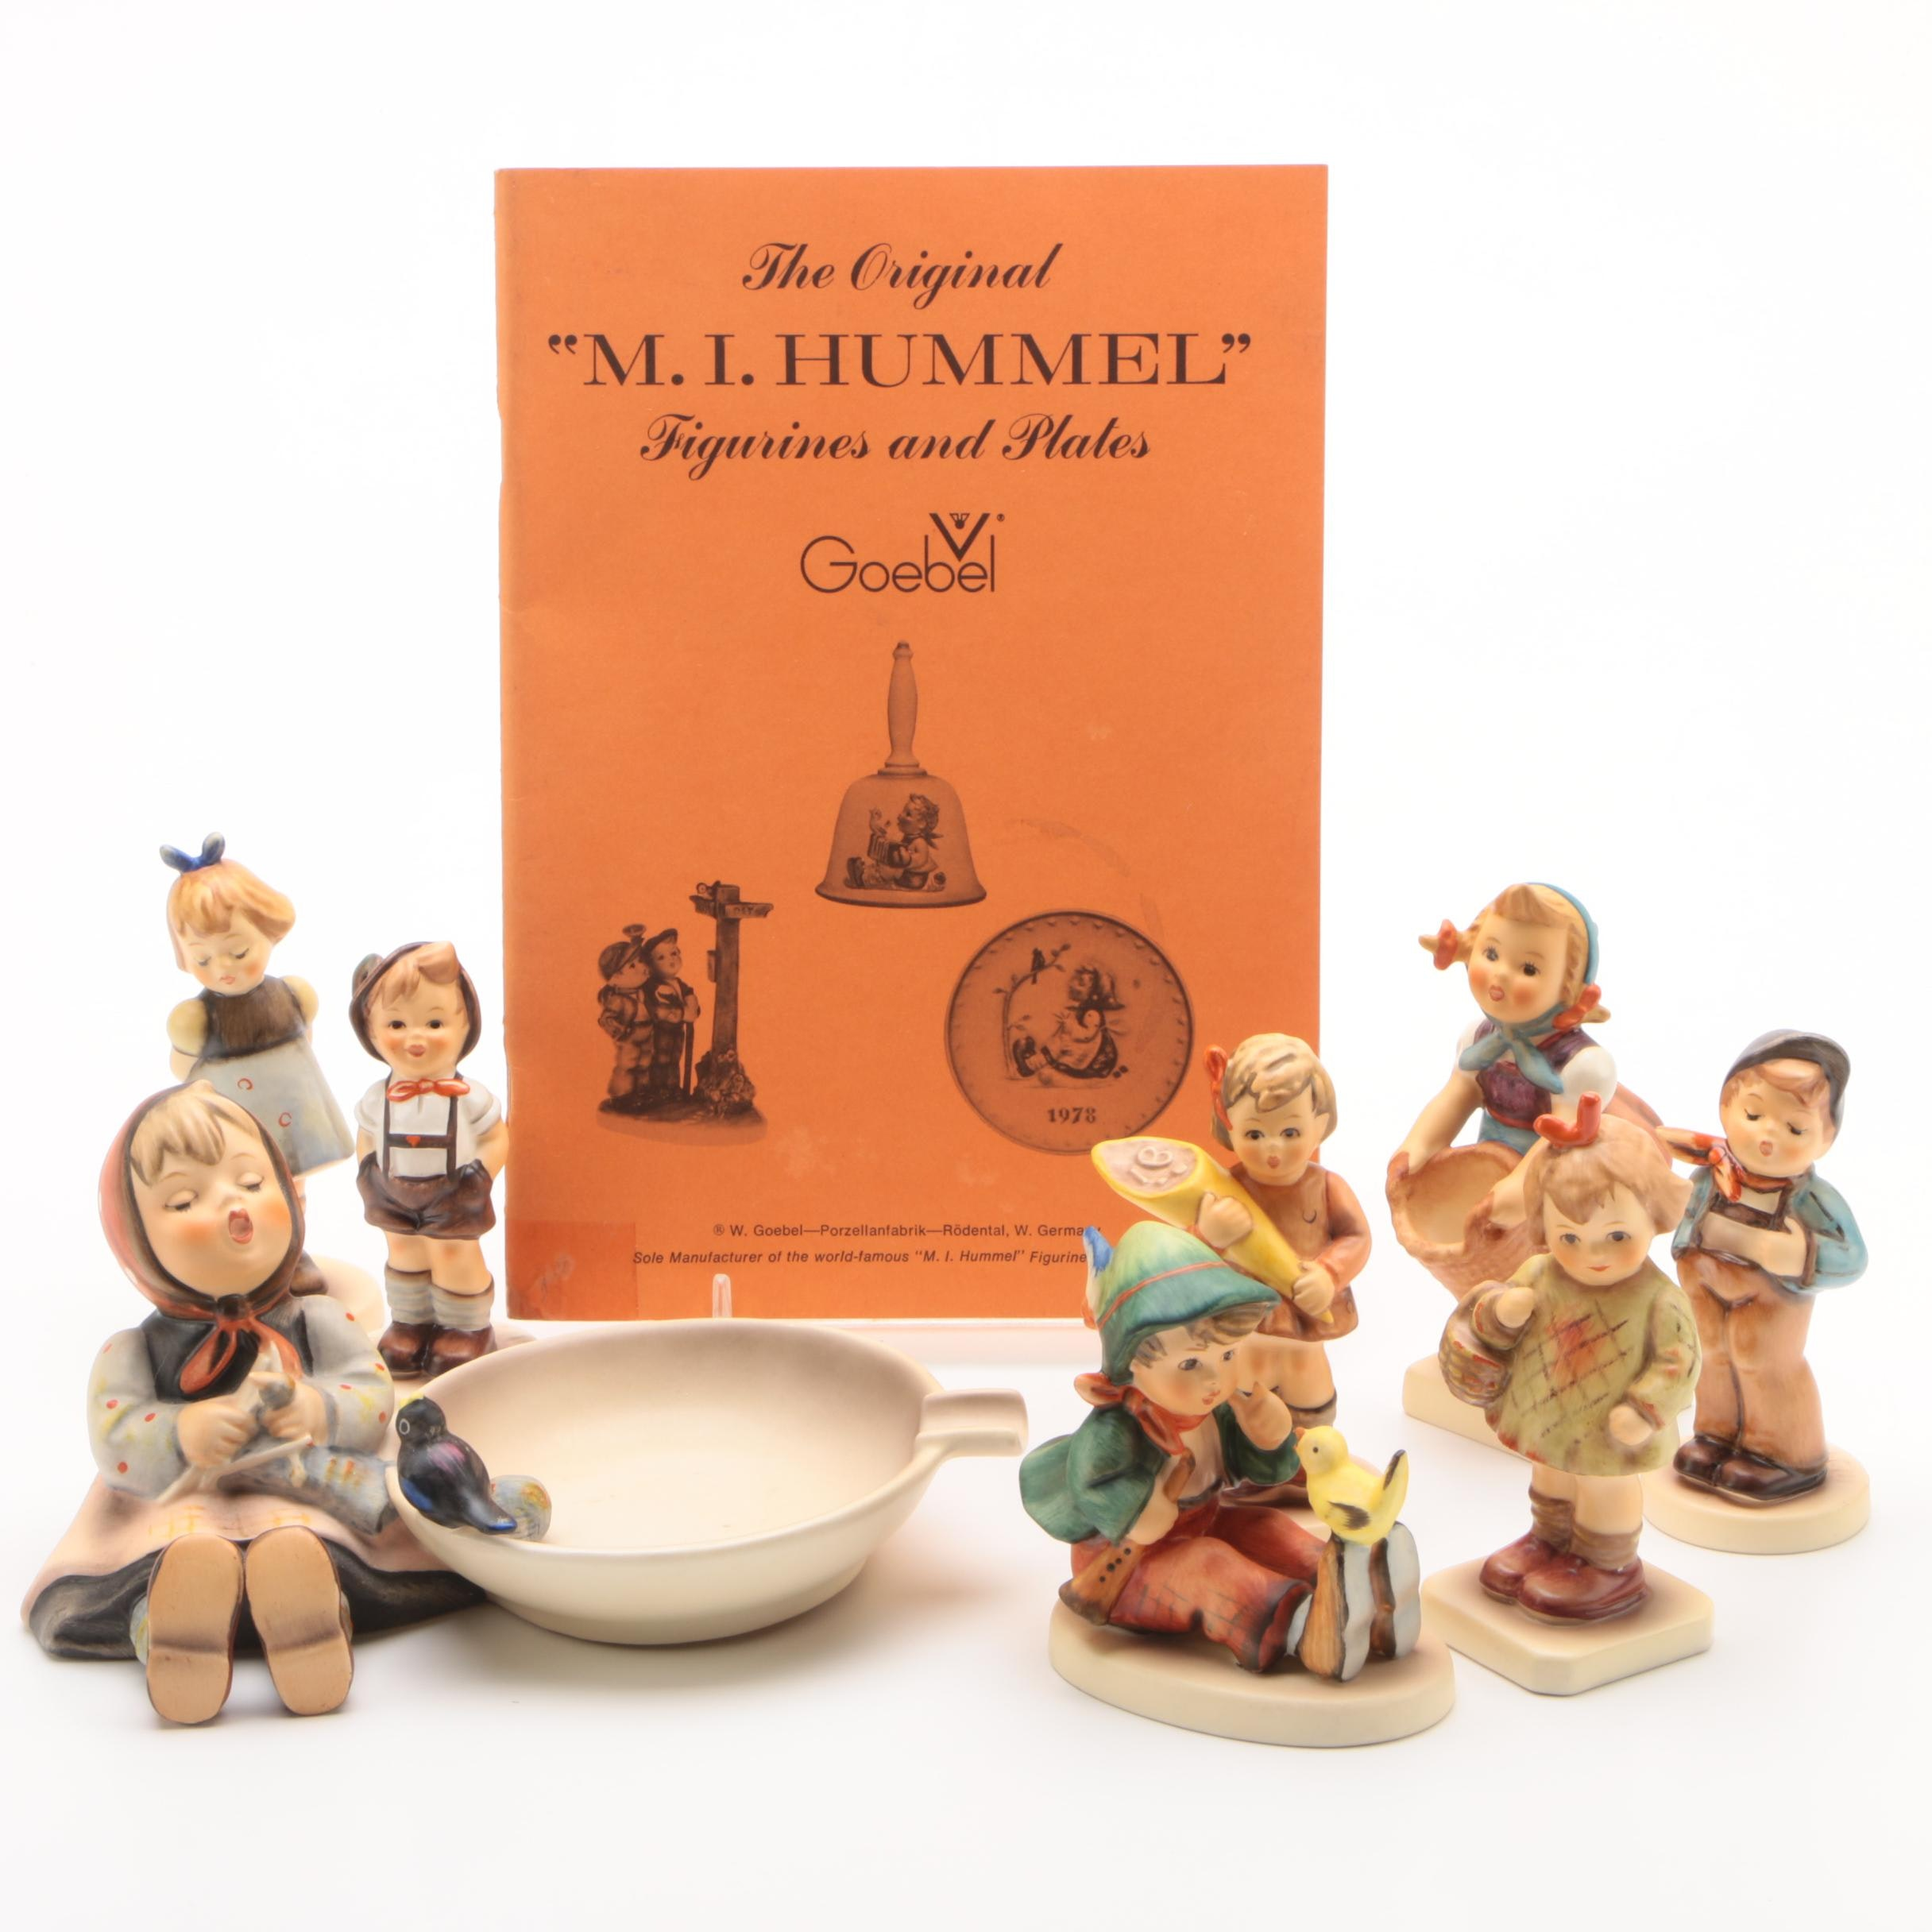 Hummel Miniature Porcelain Figurines with Ash Receiver and Booklet